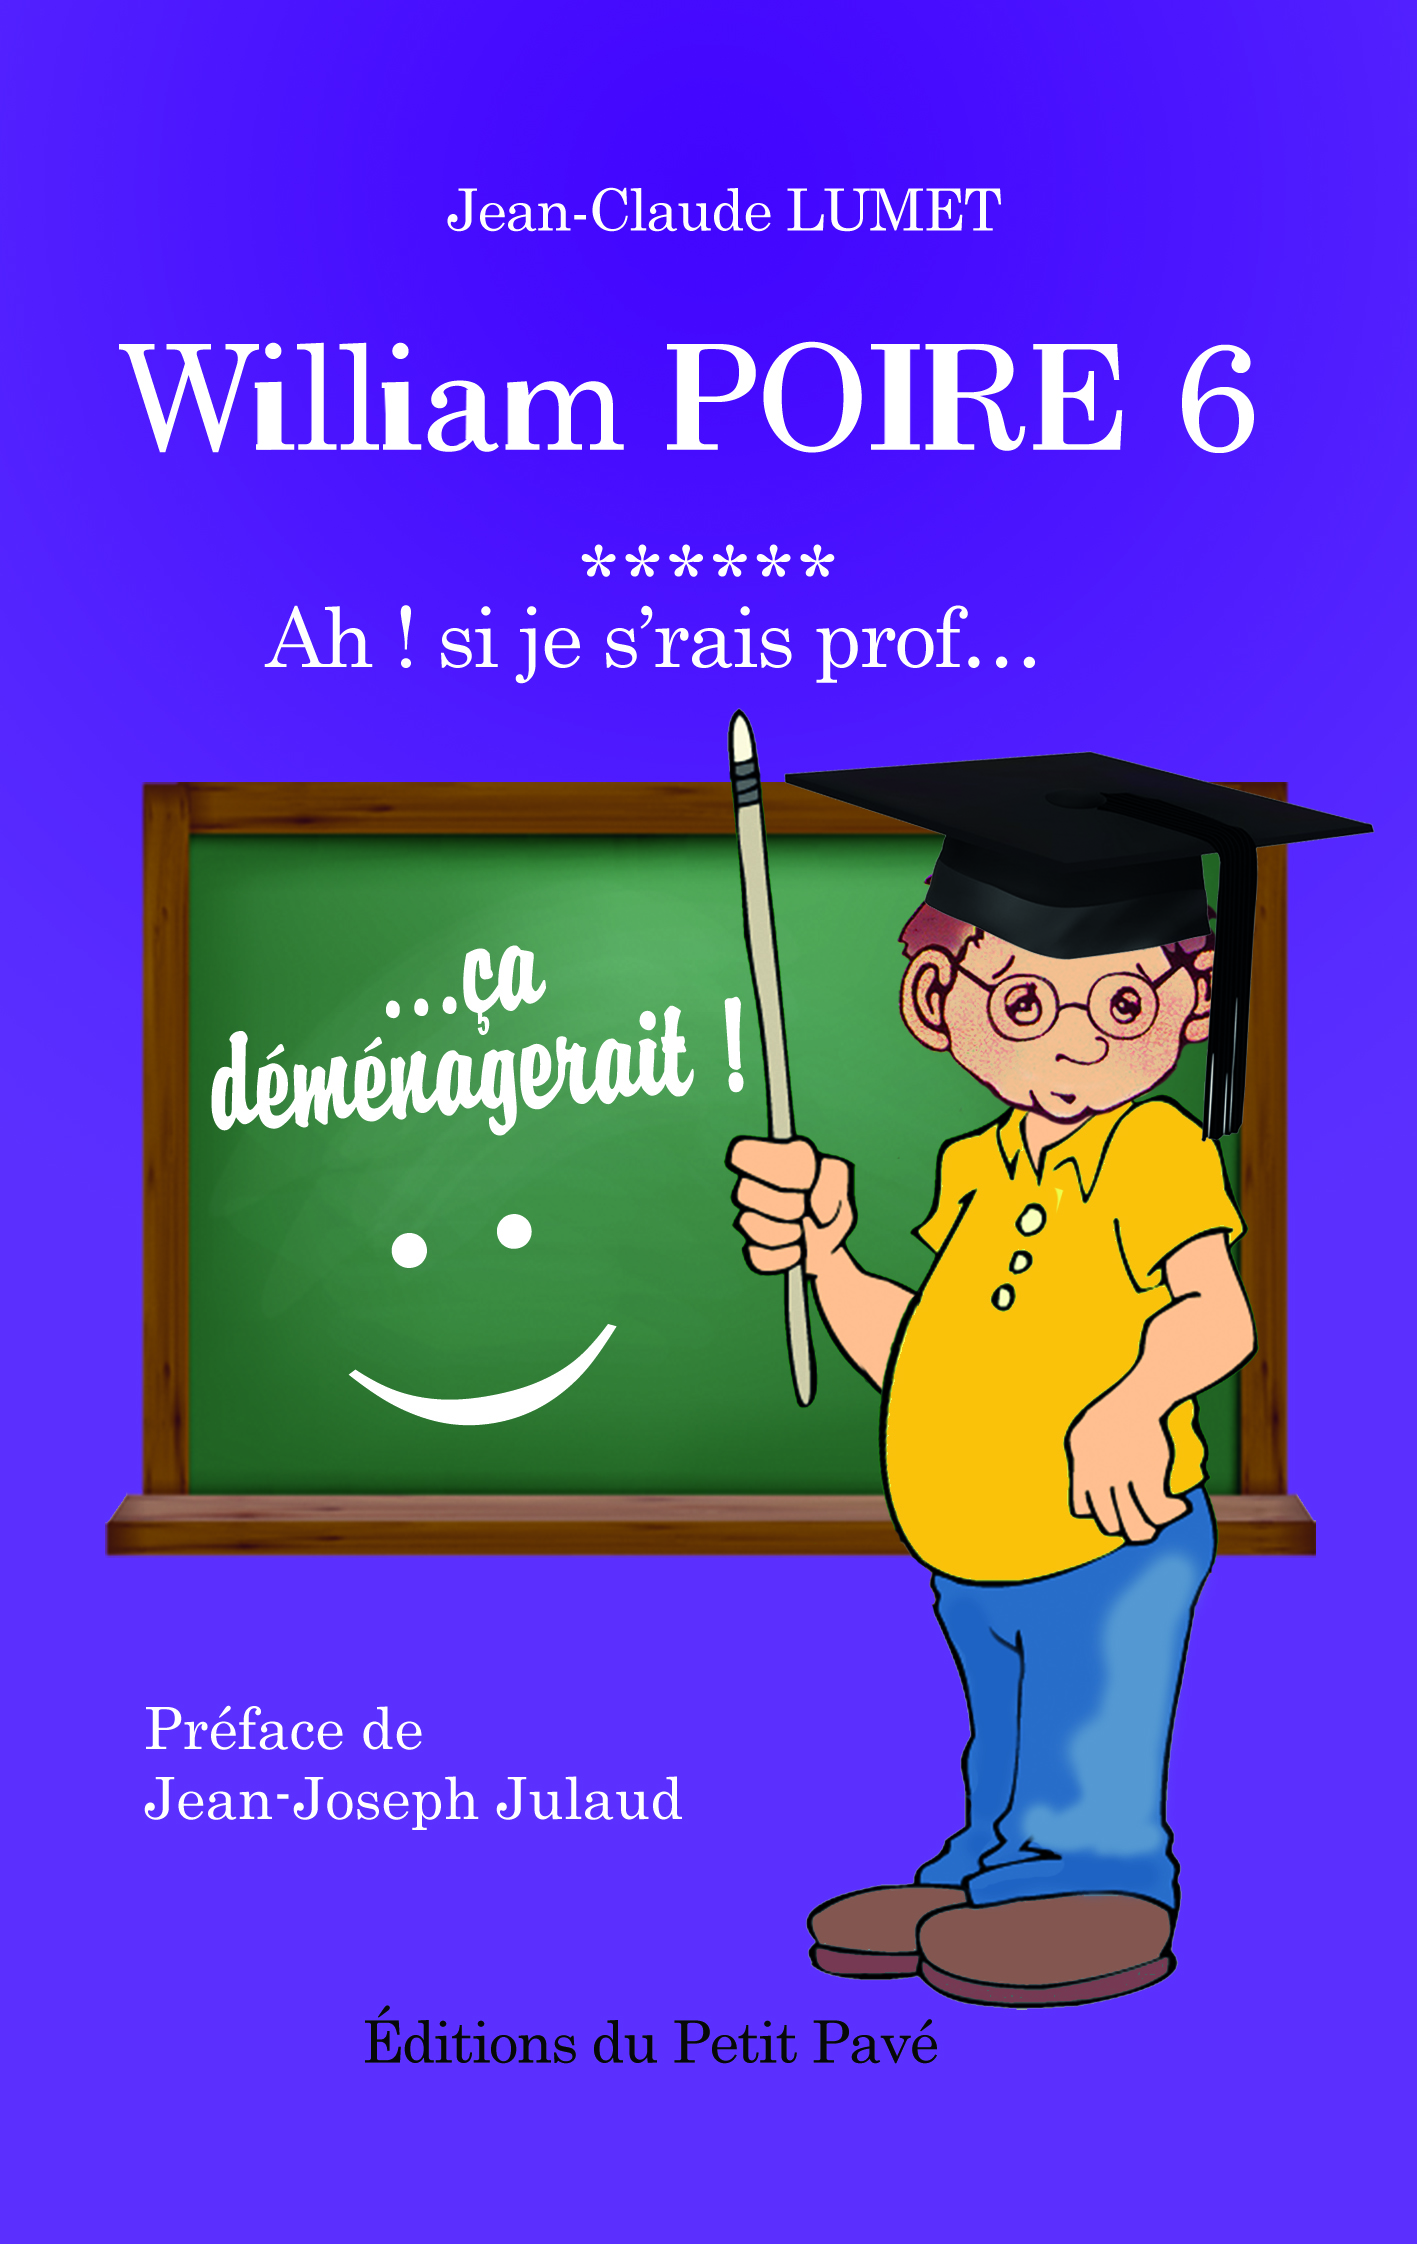 William Poire, tome 6 -  Ah ! si j'serais prof... - Photo couv-william-poire-6.jpg